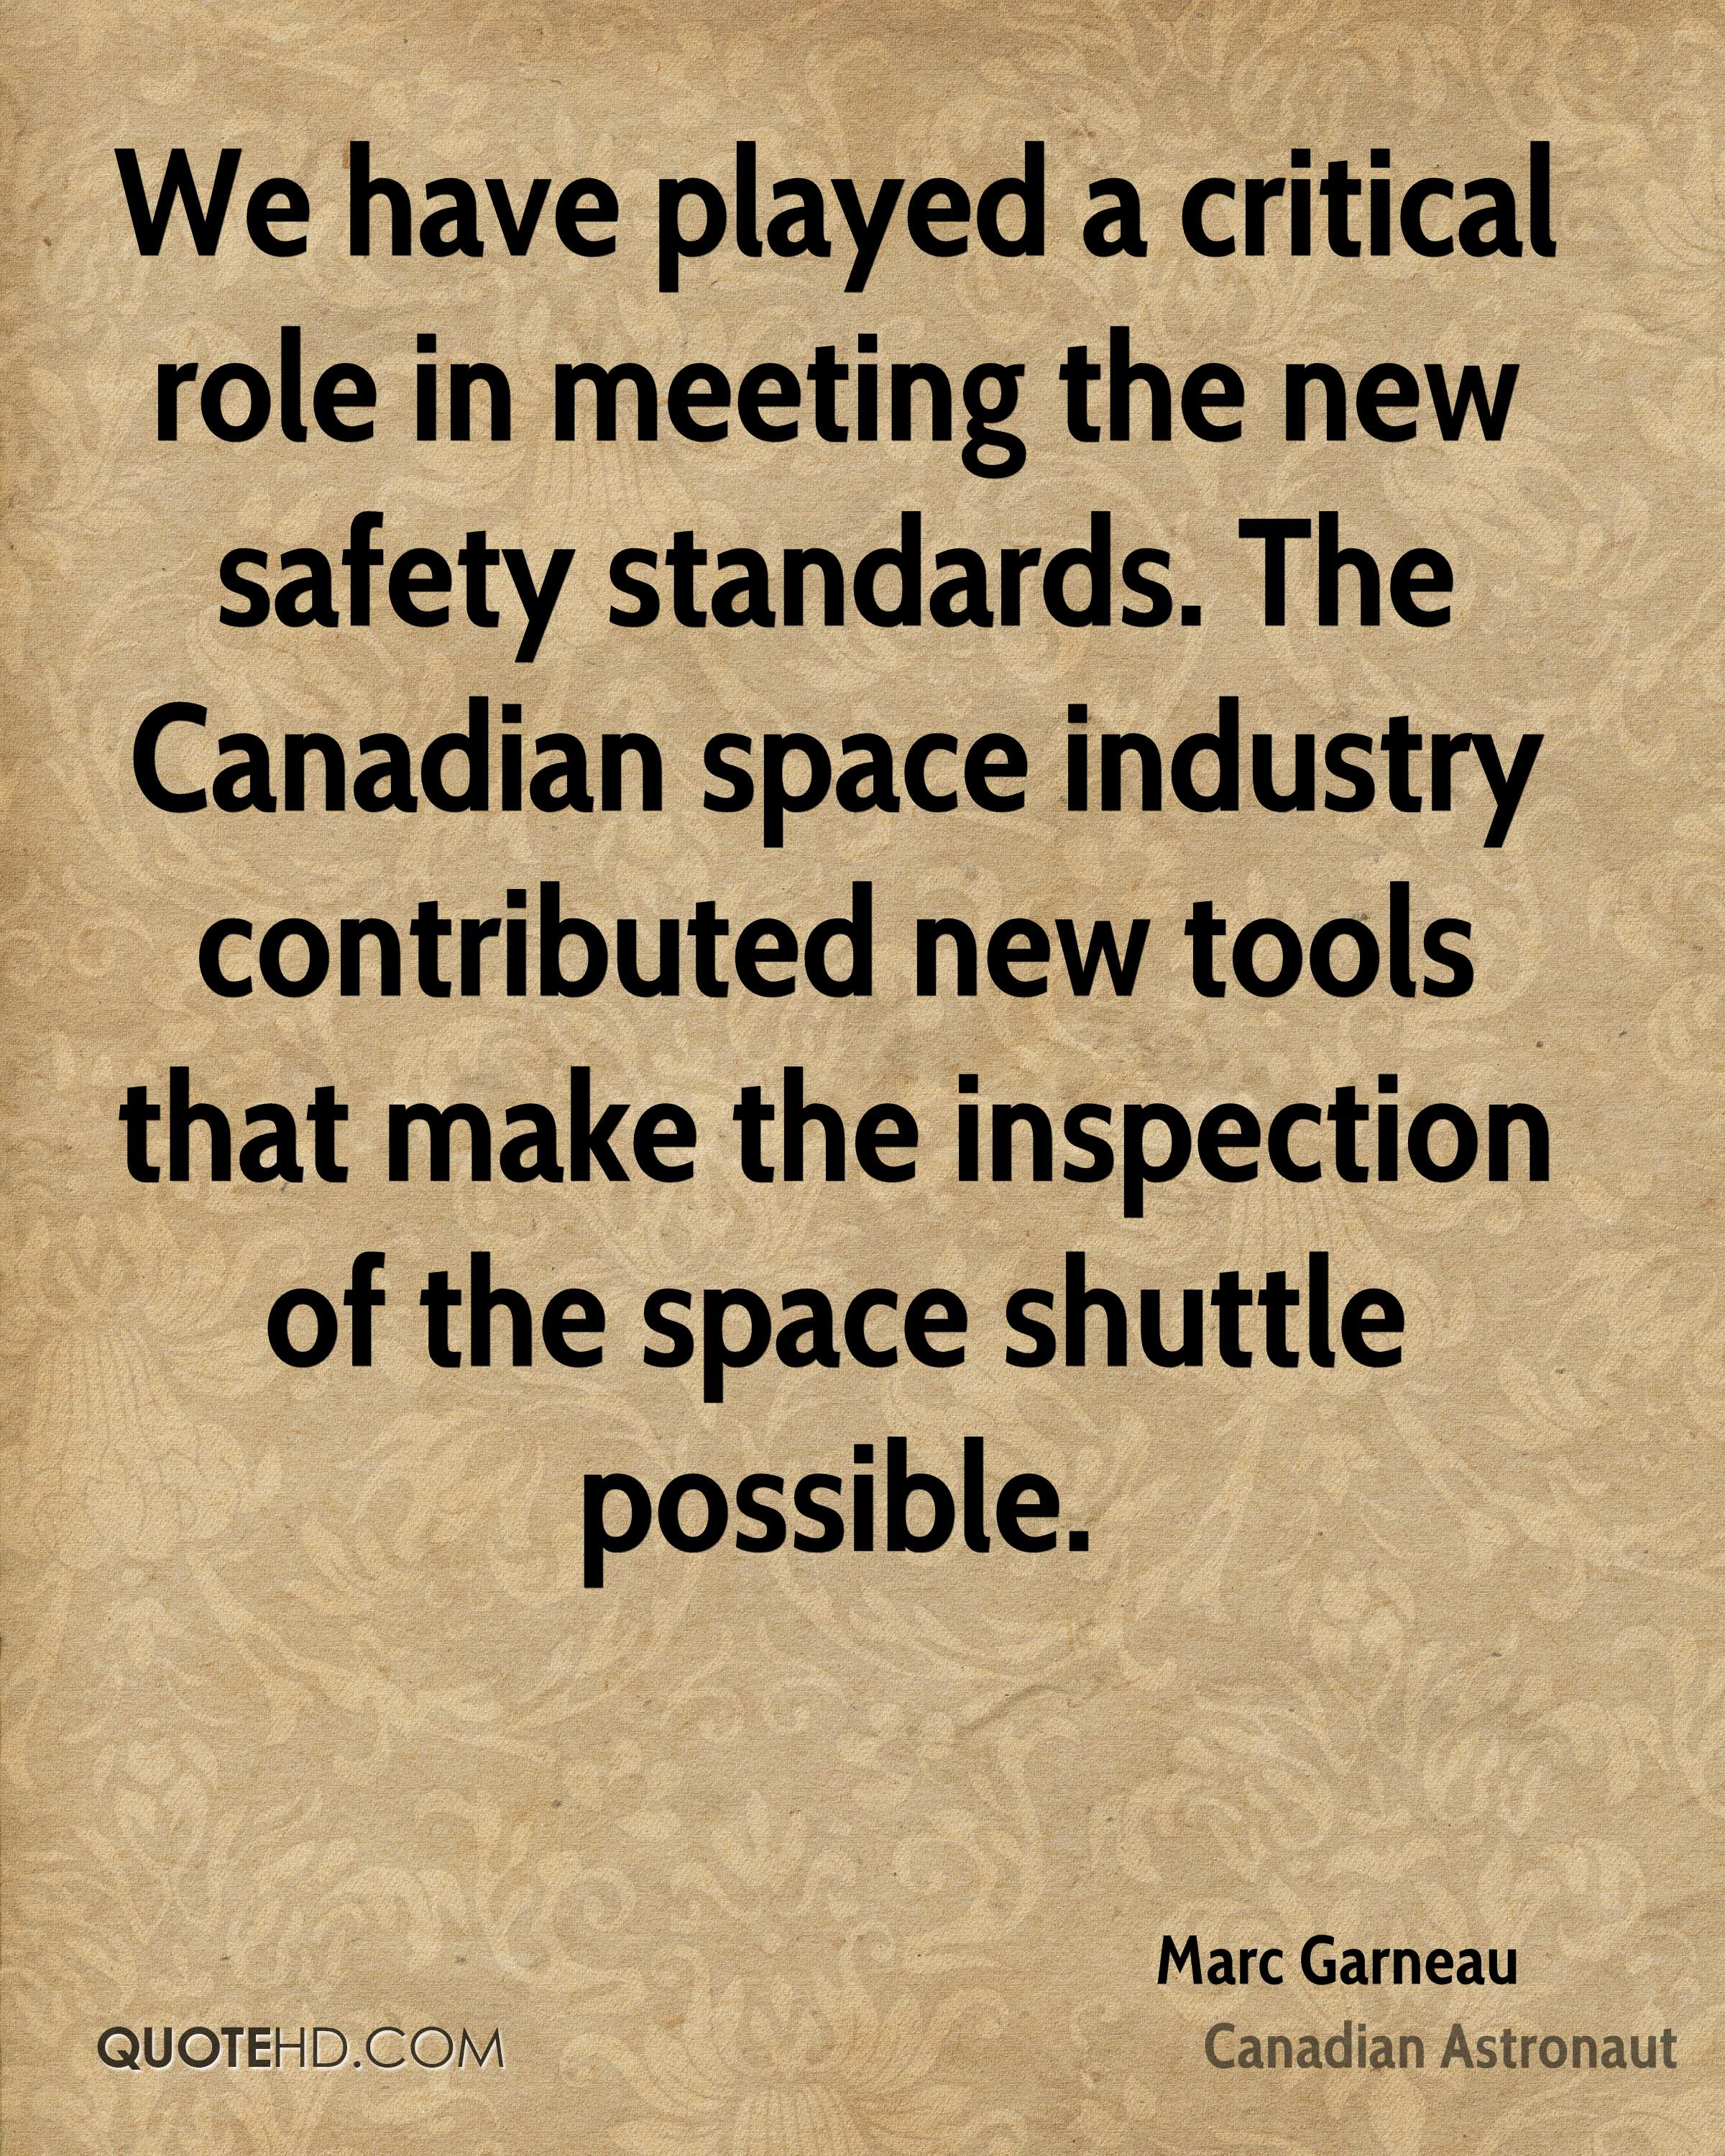 We have played a critical role in meeting the new safety standards. The Canadian space industry contributed new tools that make the inspection of the space shuttle possible.